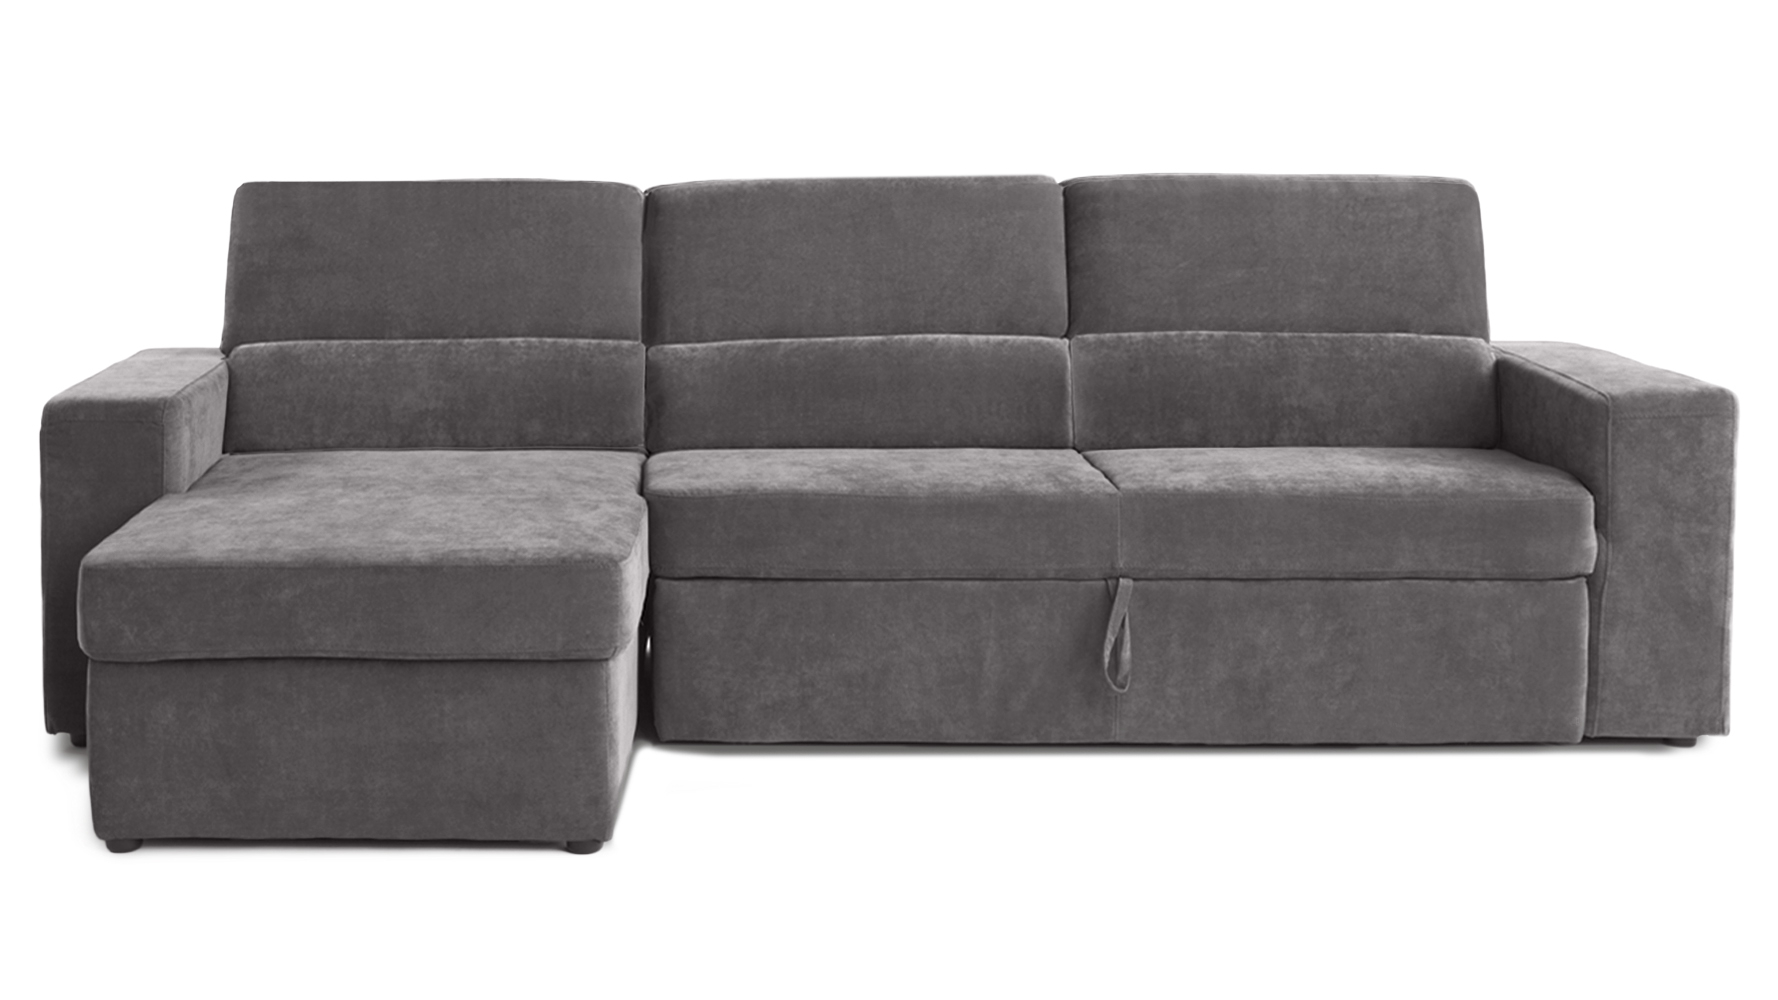 small sleeper sofa sectionals living room design placement sectional ideas on foter